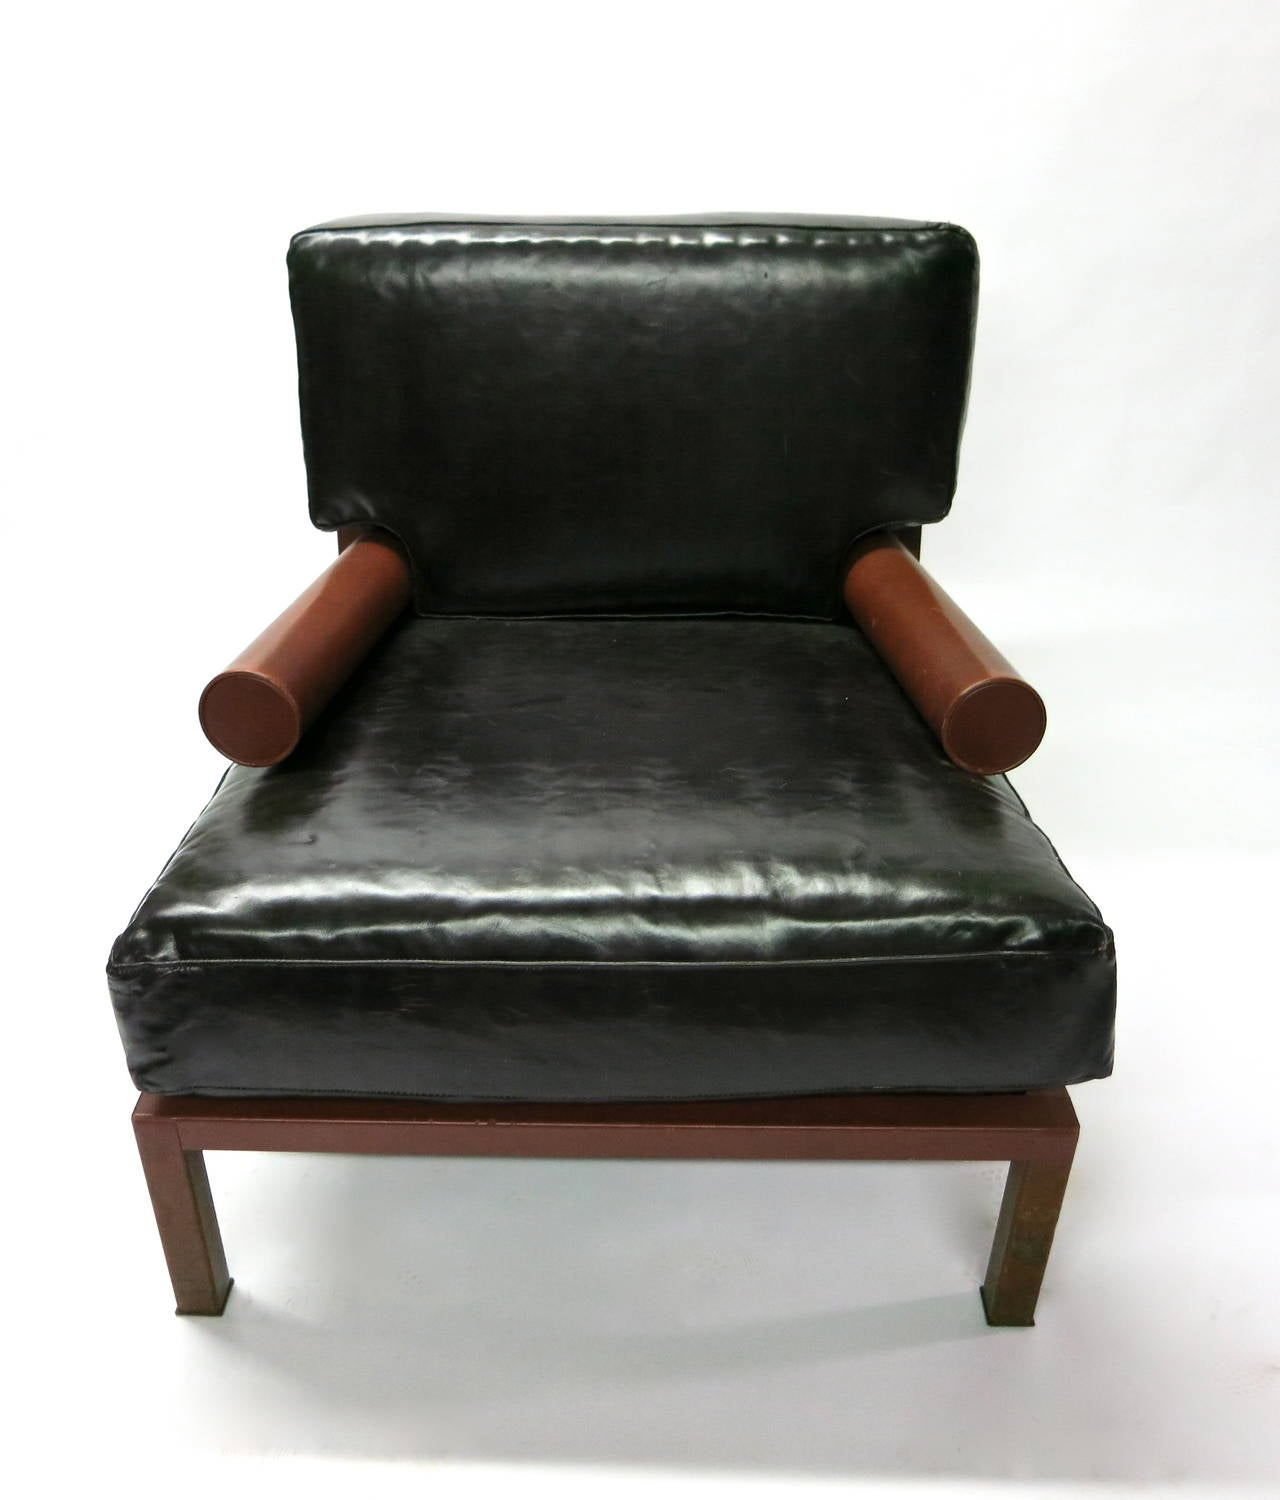 Leather chair with dark brown oversized cushions in brown leather. The round arms rectangular back and seat all in red leather. Designed in 1987 by Antonio Citterio for B&B Italia.